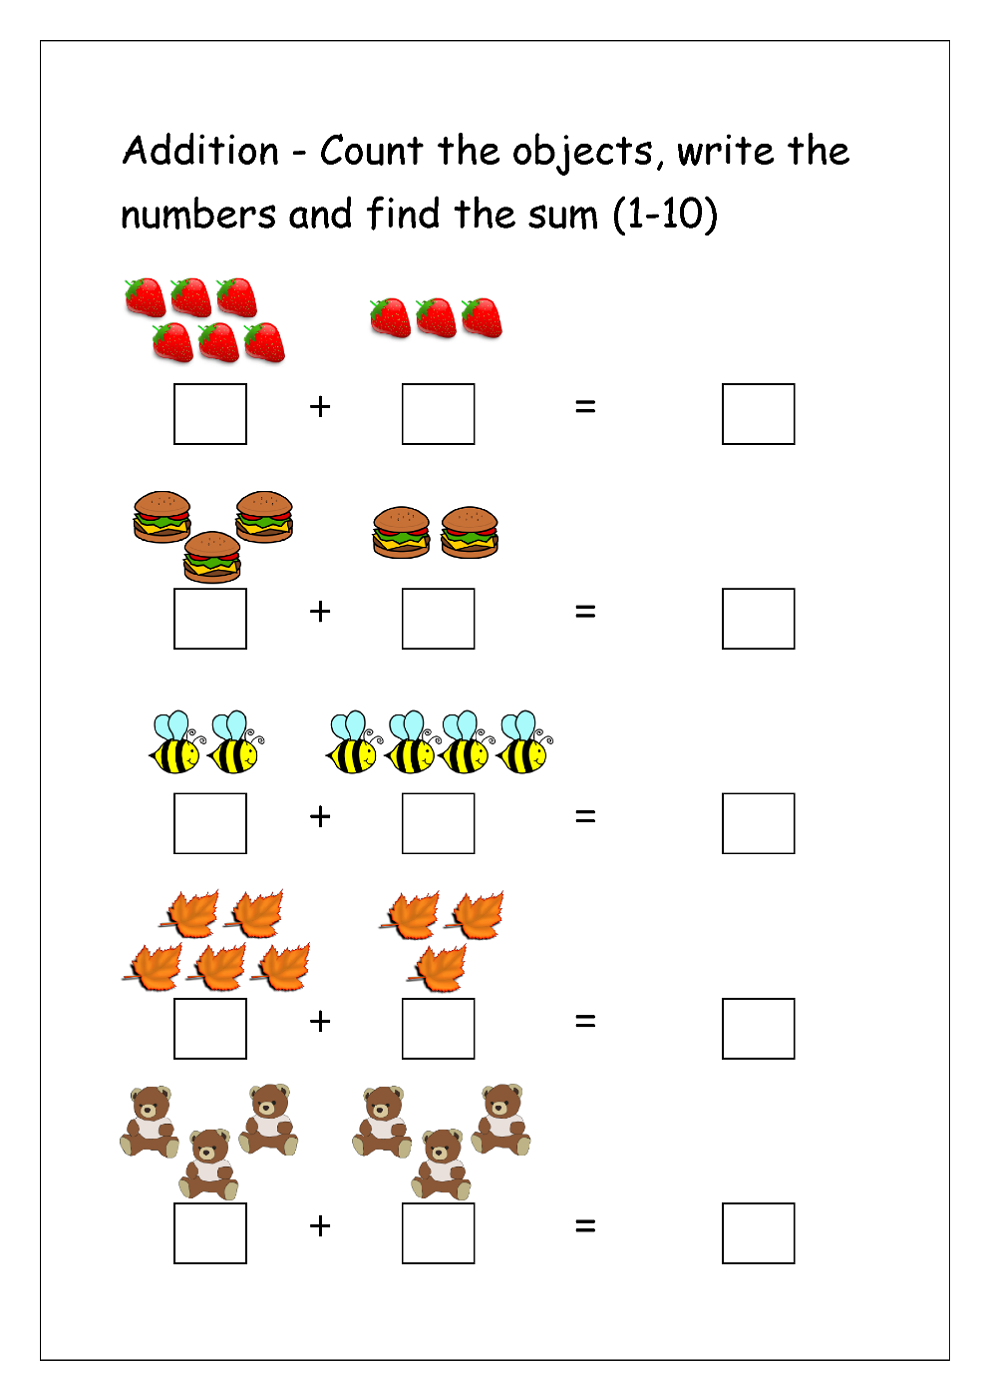 addition worksheets for grade 1 for kindergarten